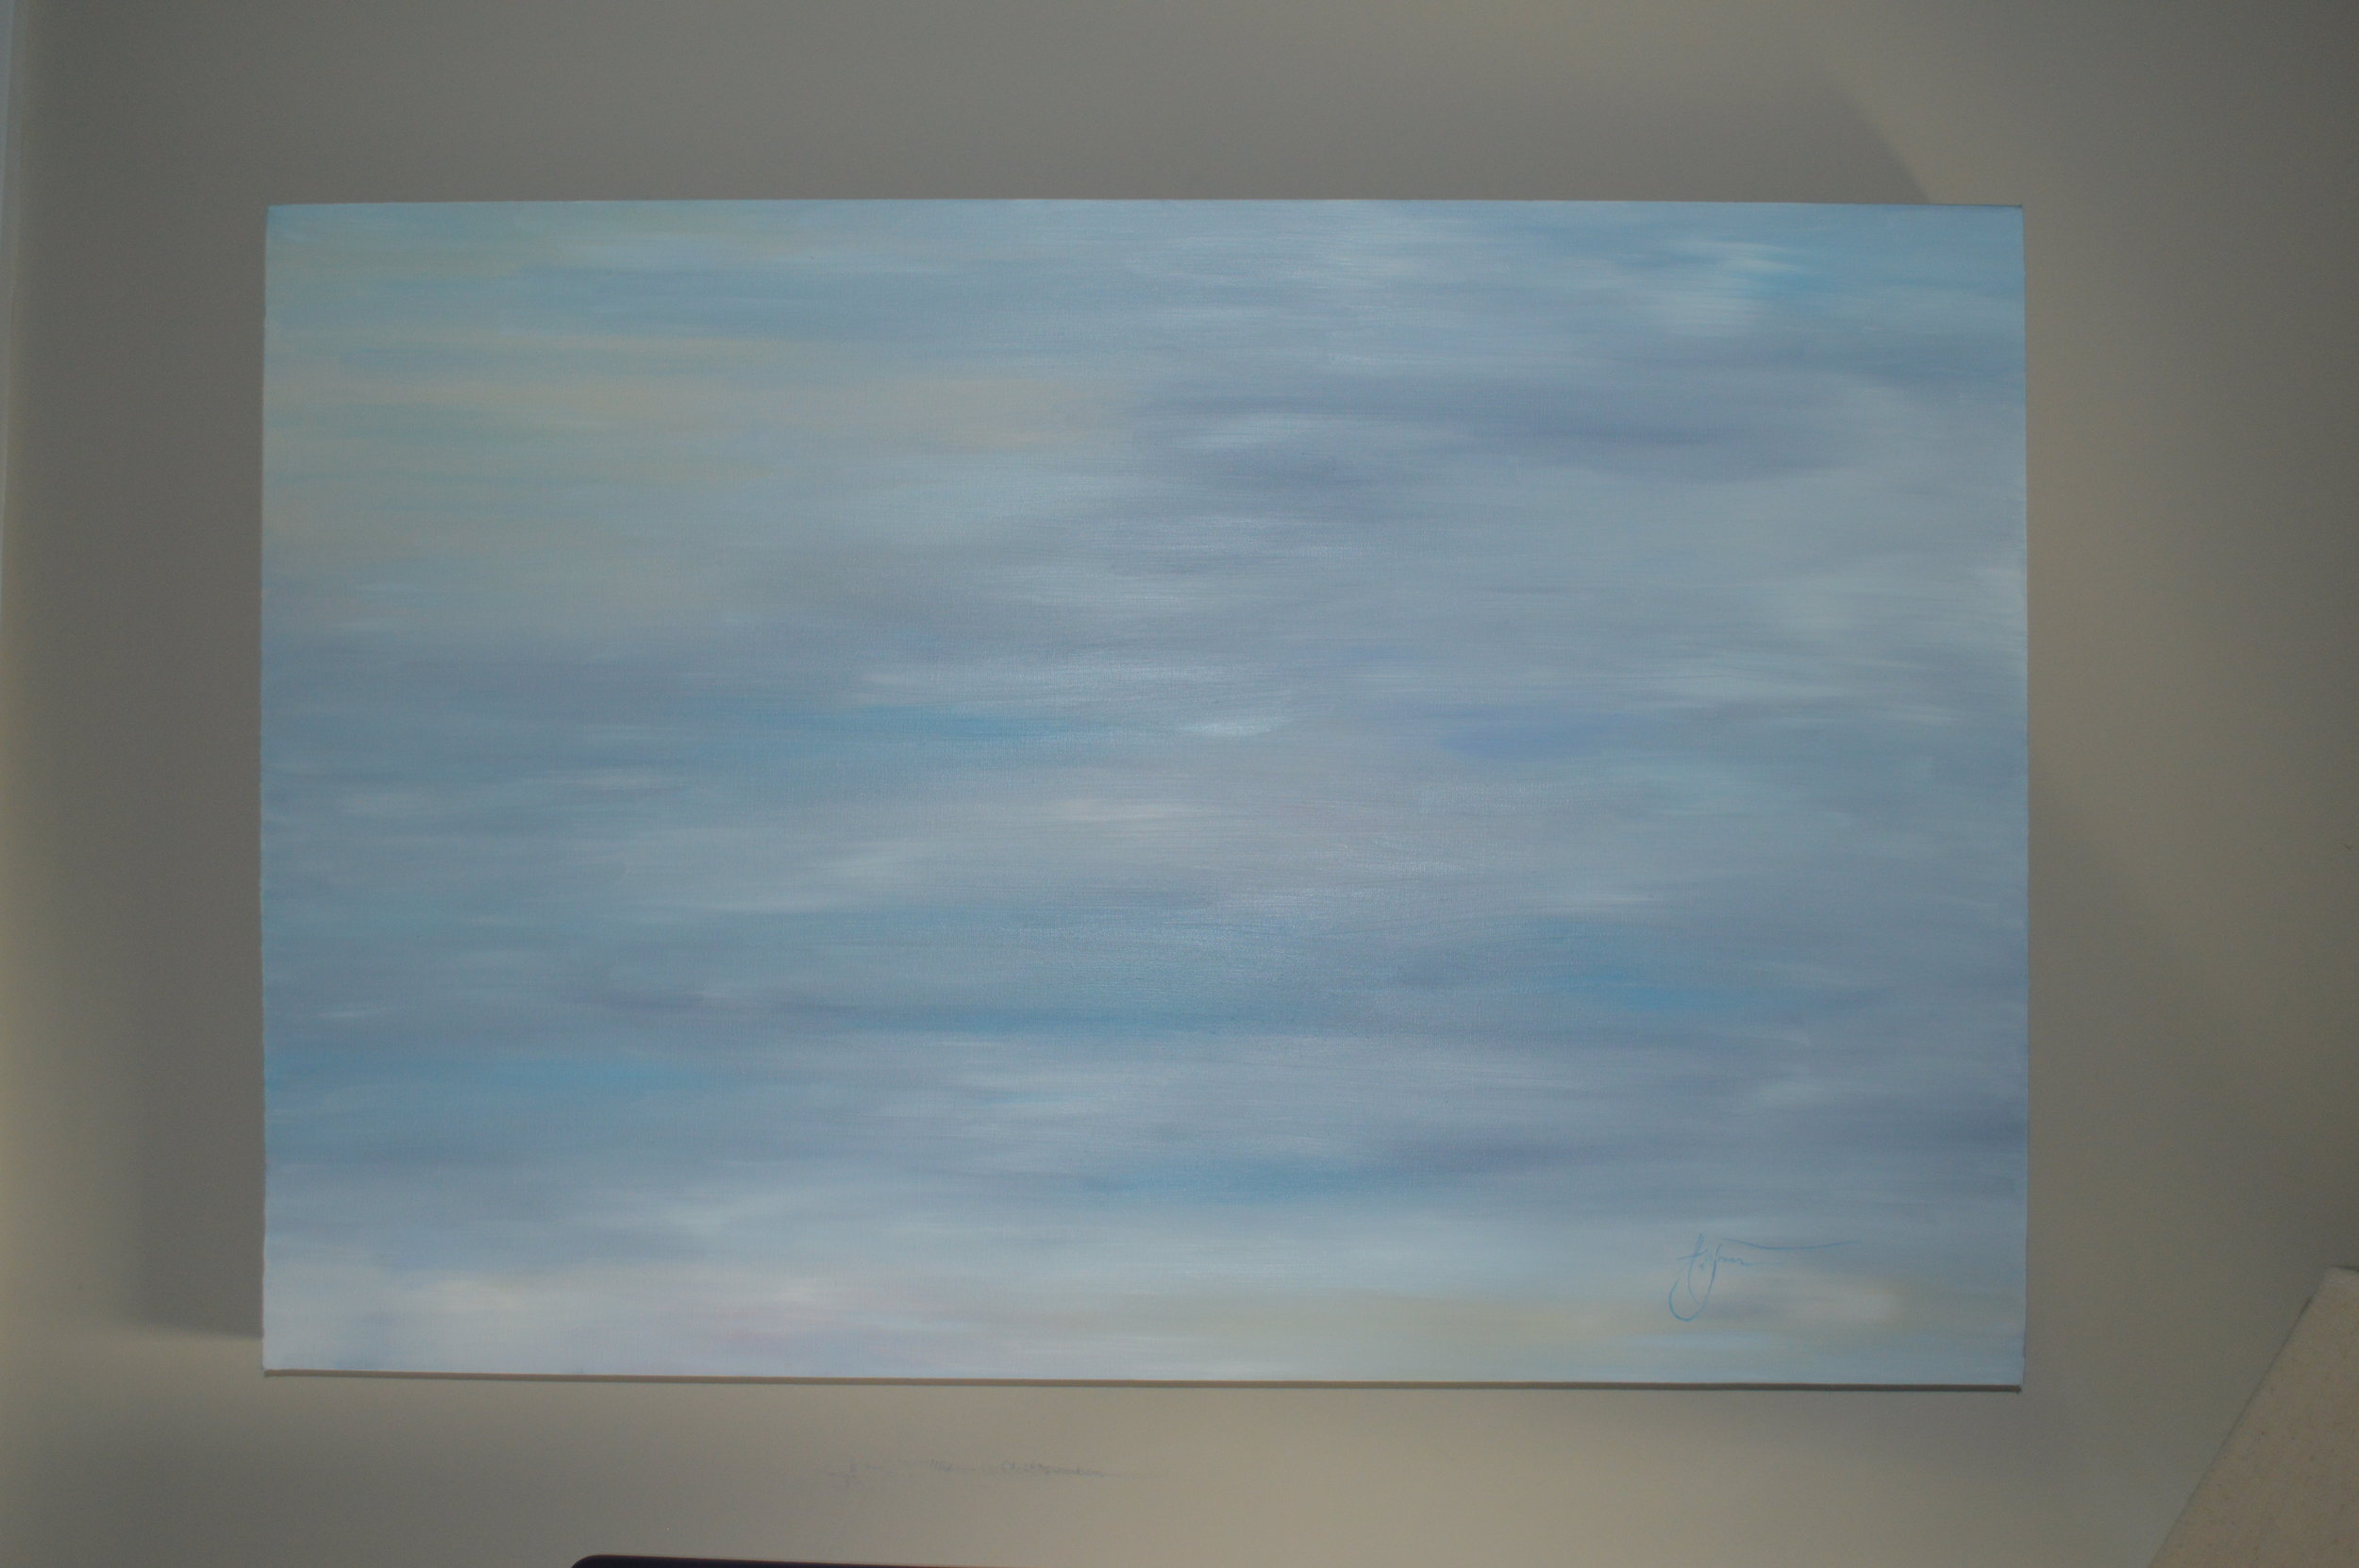 """36 x 24 x 3.5"""" Gallery Wrapped Original Oil Painting $650"""